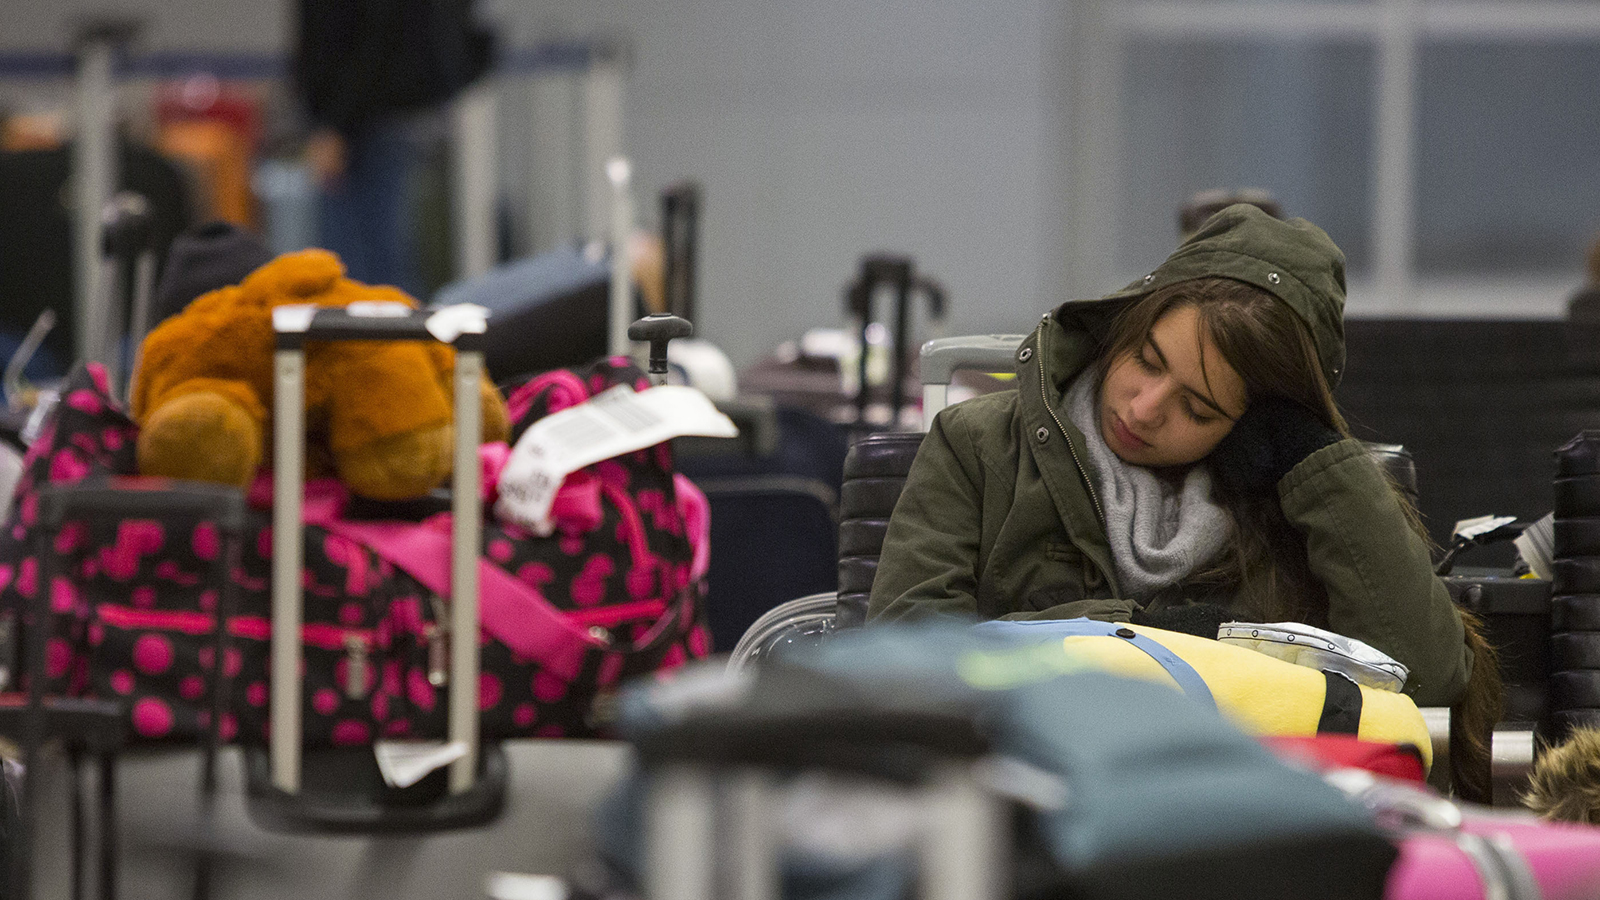 A woman tries to sleep amongst baggage at the John F. Kennedy International Airport in New York